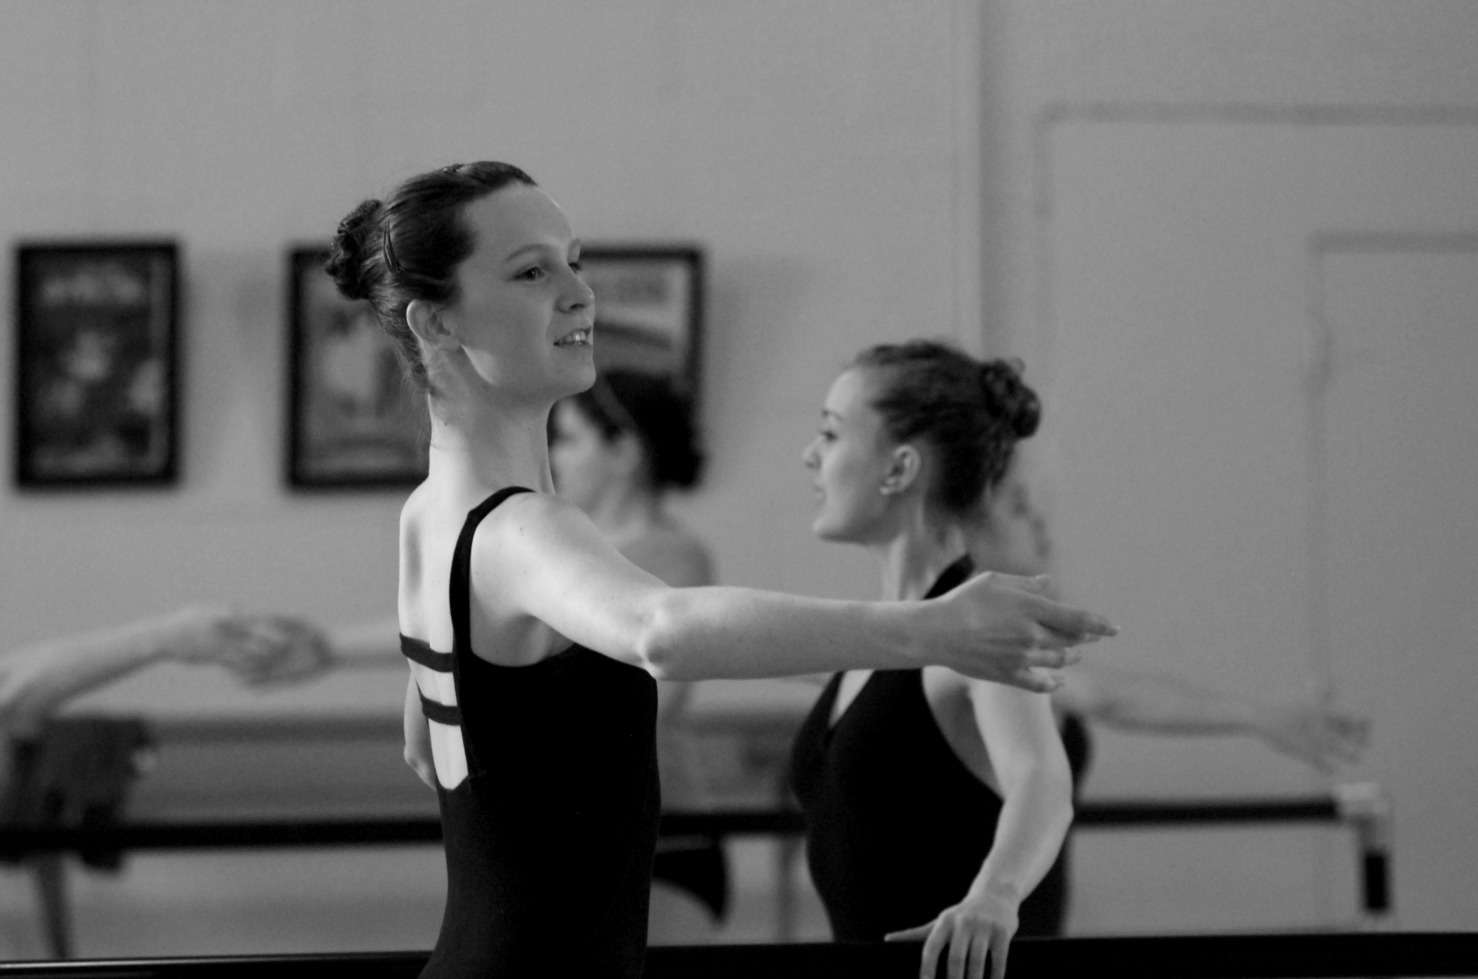 Advanced students at the barre in Ballet class.